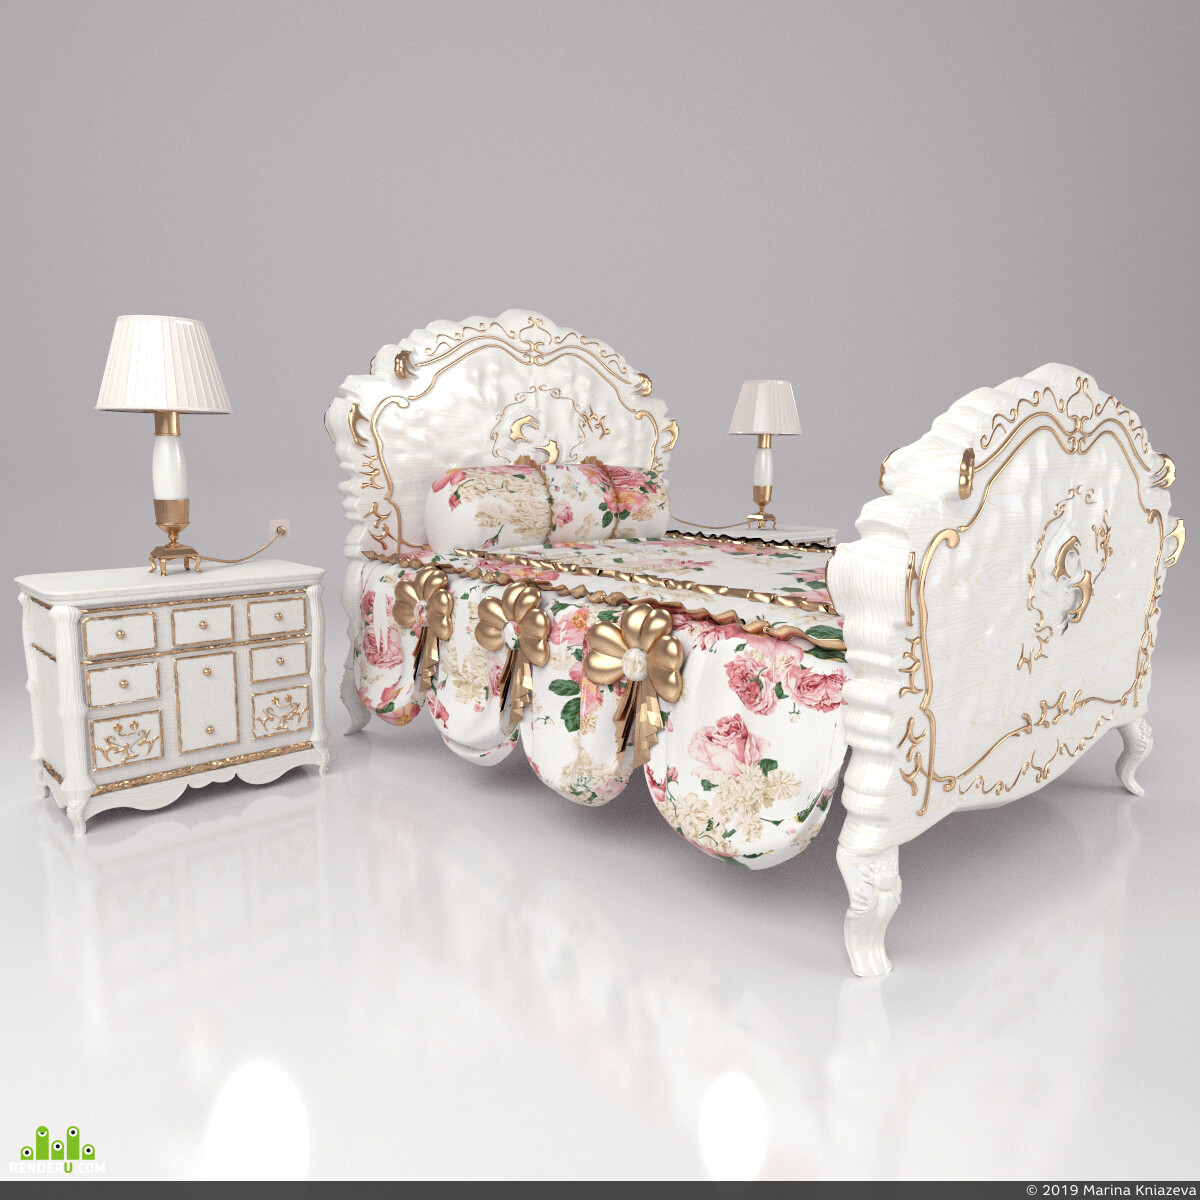 baroque, bed, bedroom, carving, classic, classical, detailed, elegant, empire, exquisite